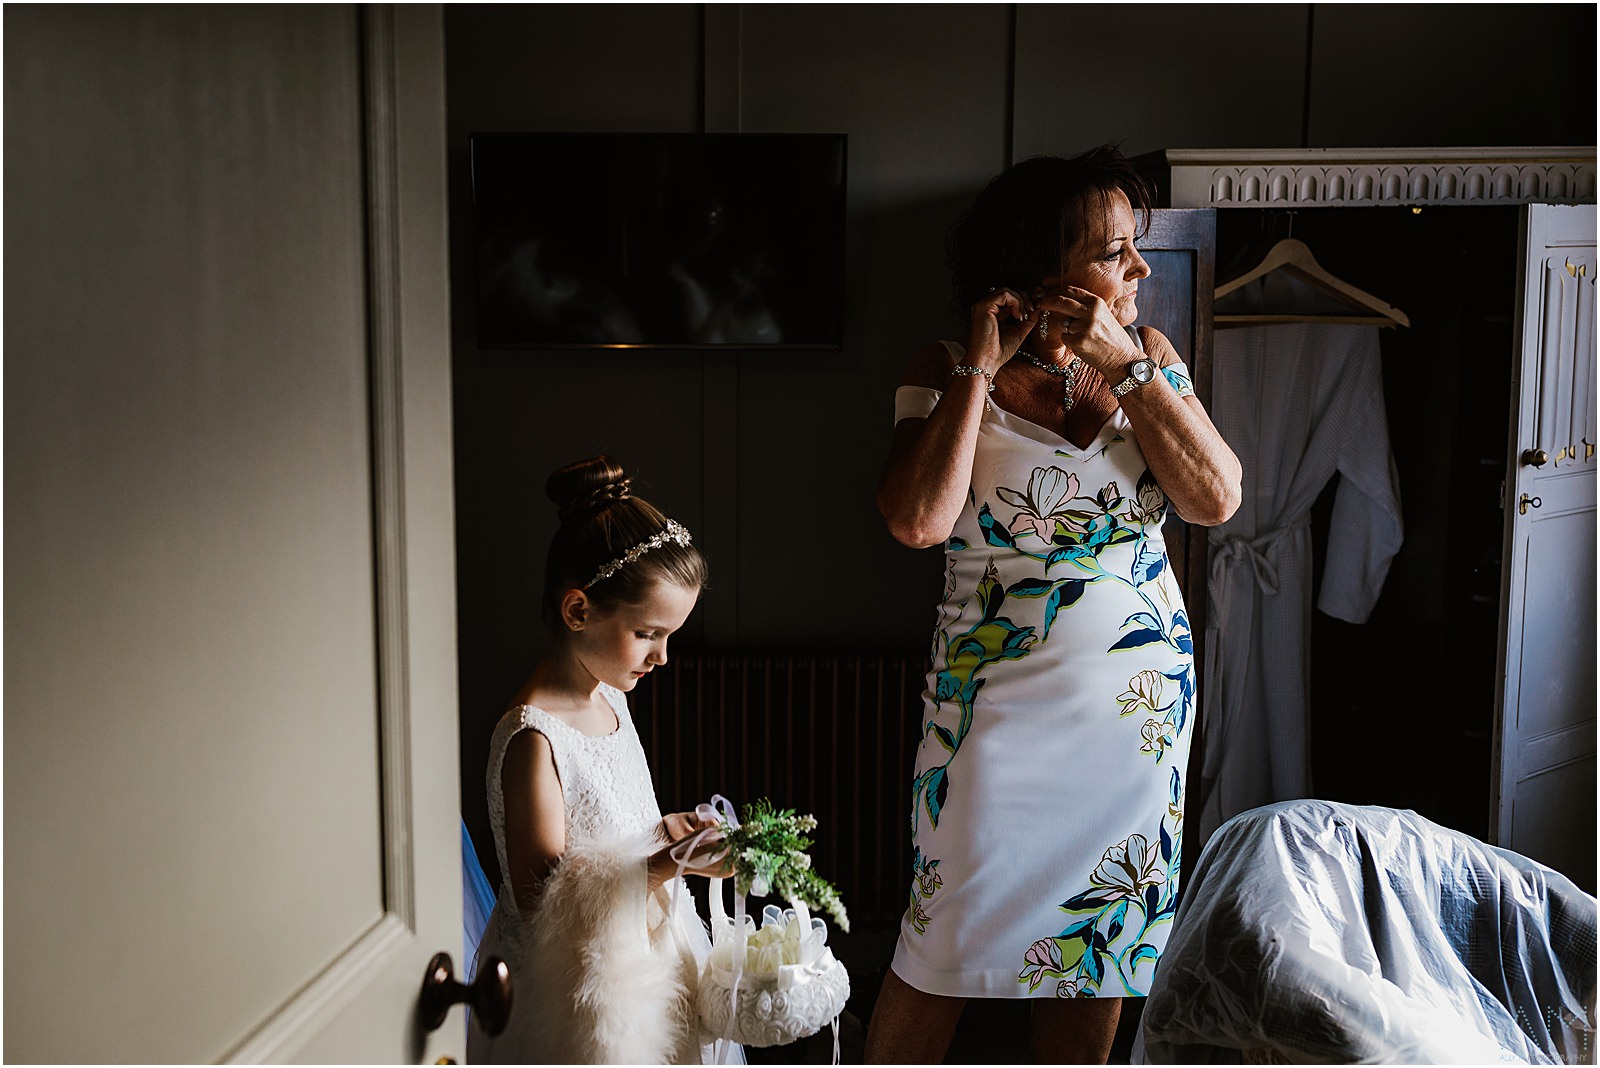 Grandma and daughter getting ready for the wedding